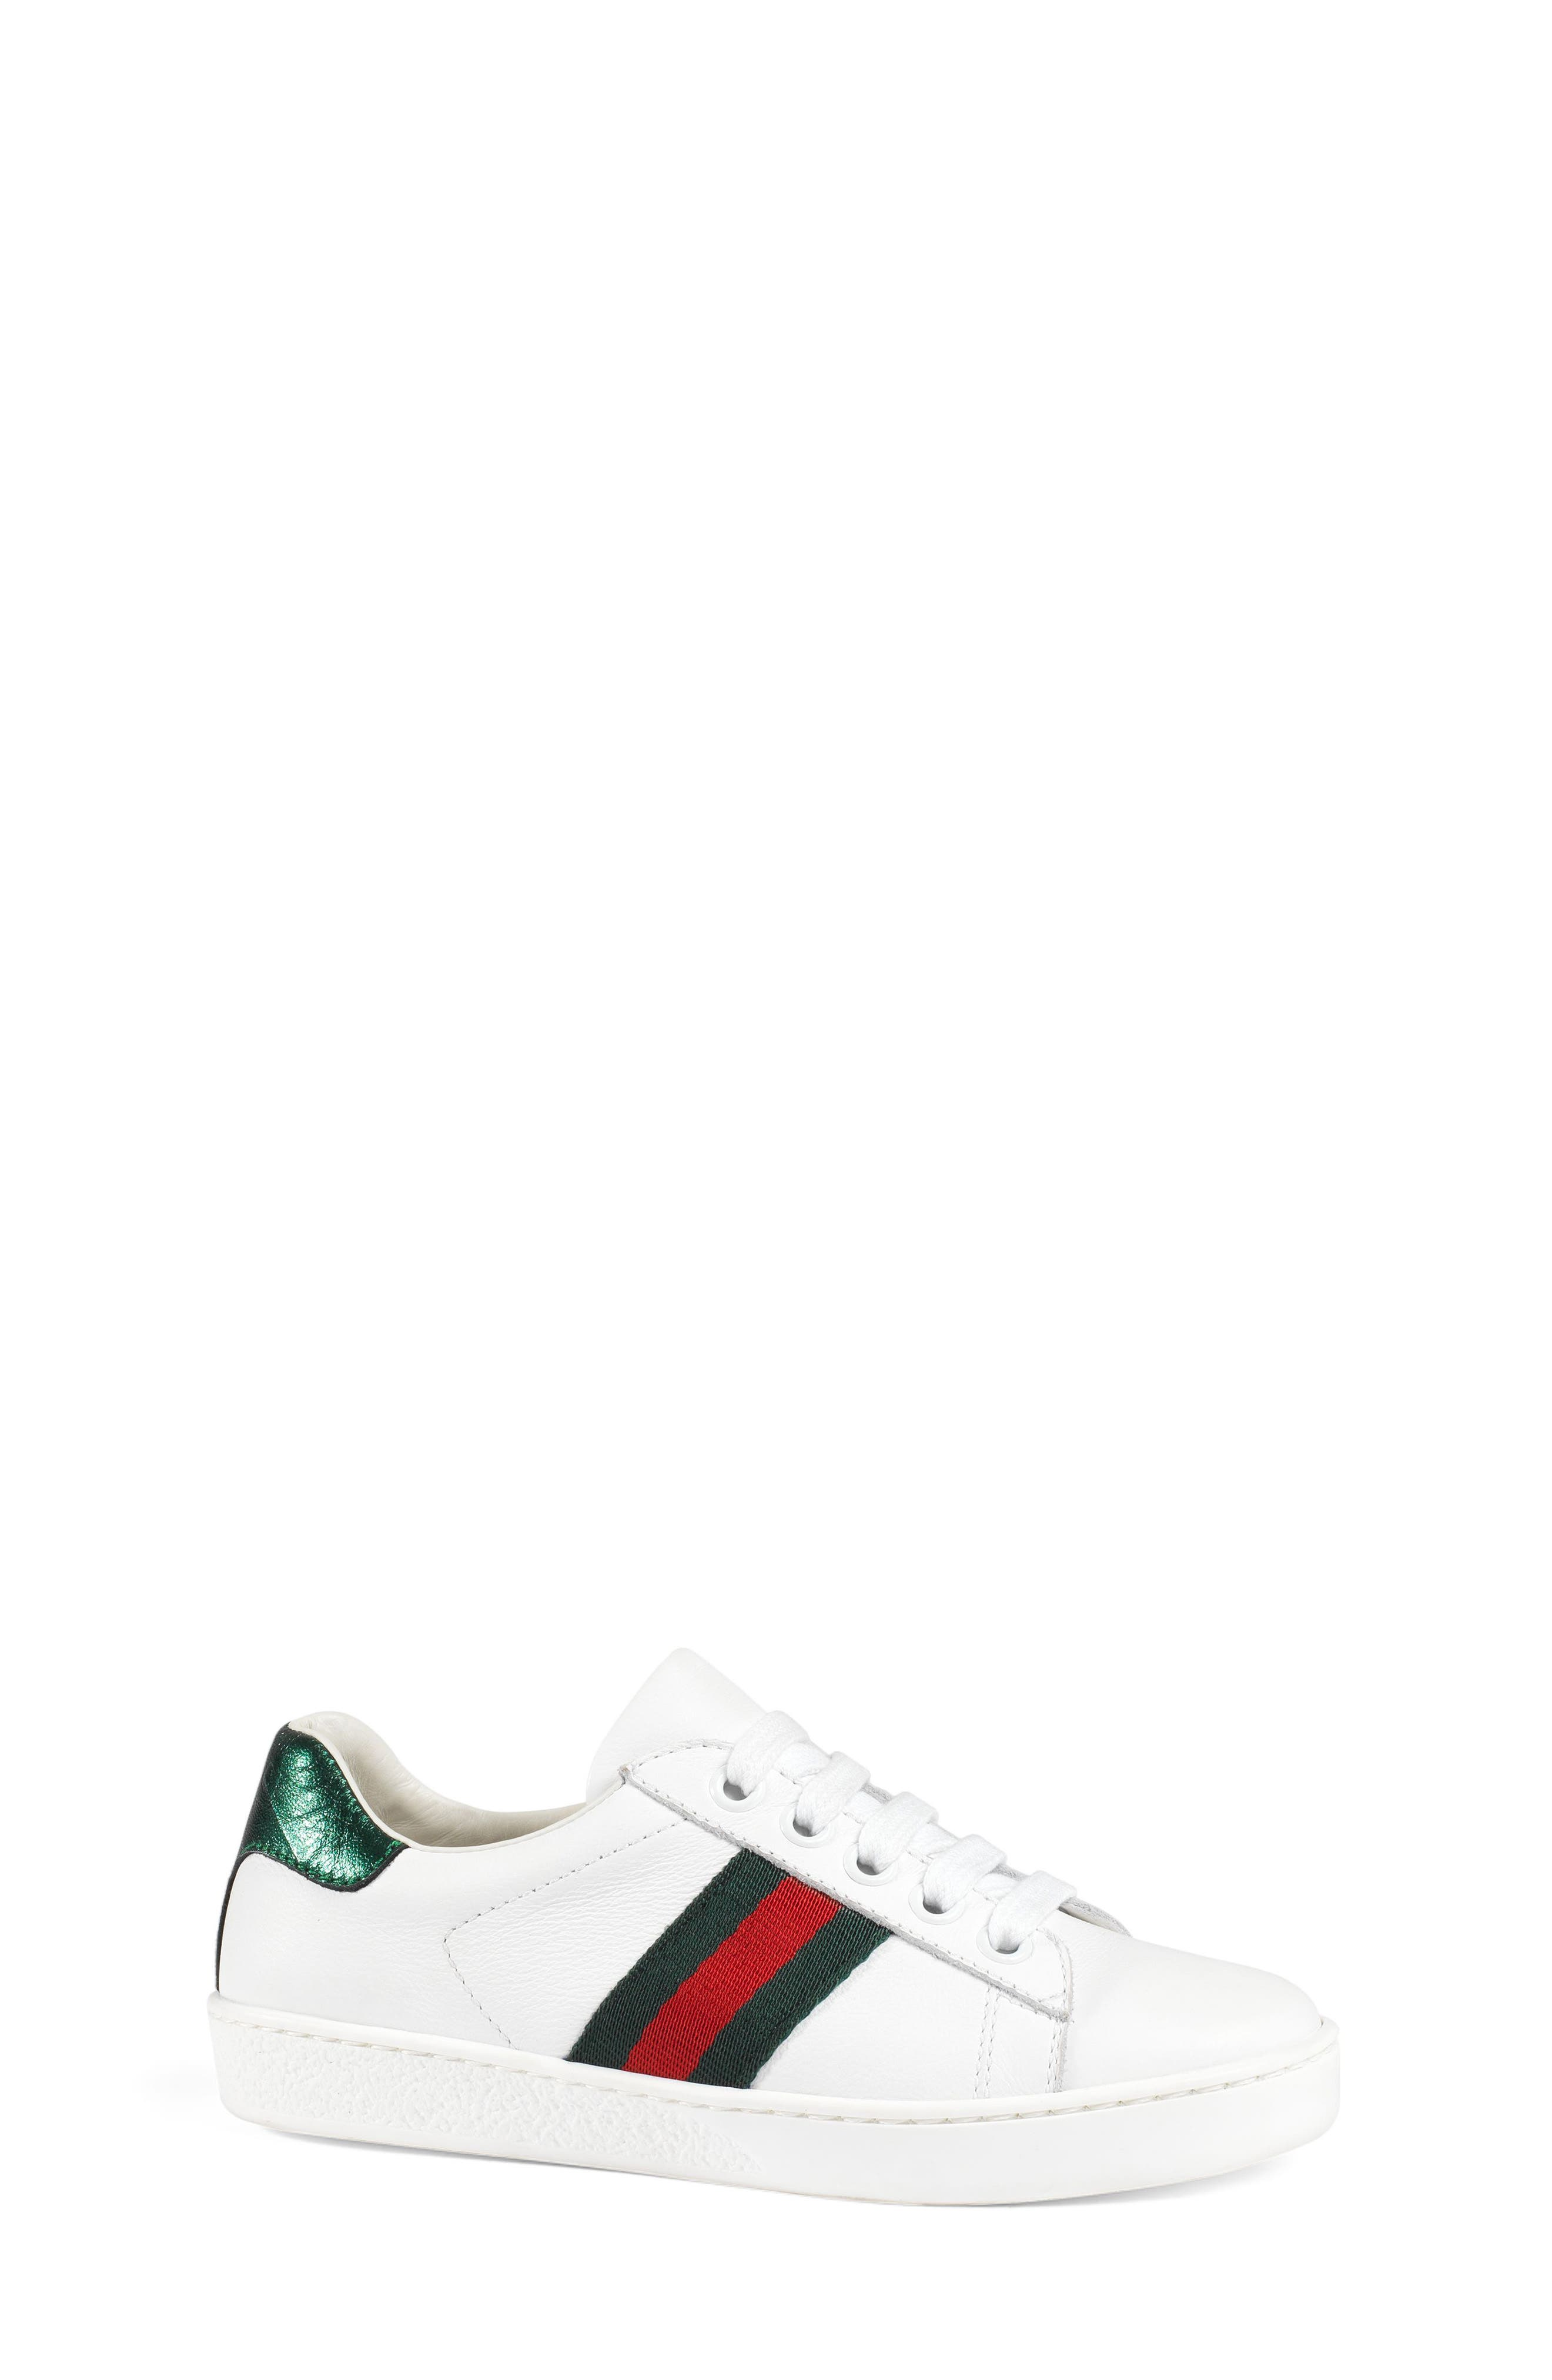 GUCCI, 'Ace' Sneaker, Alternate thumbnail 5, color, WHITE/ GREEN